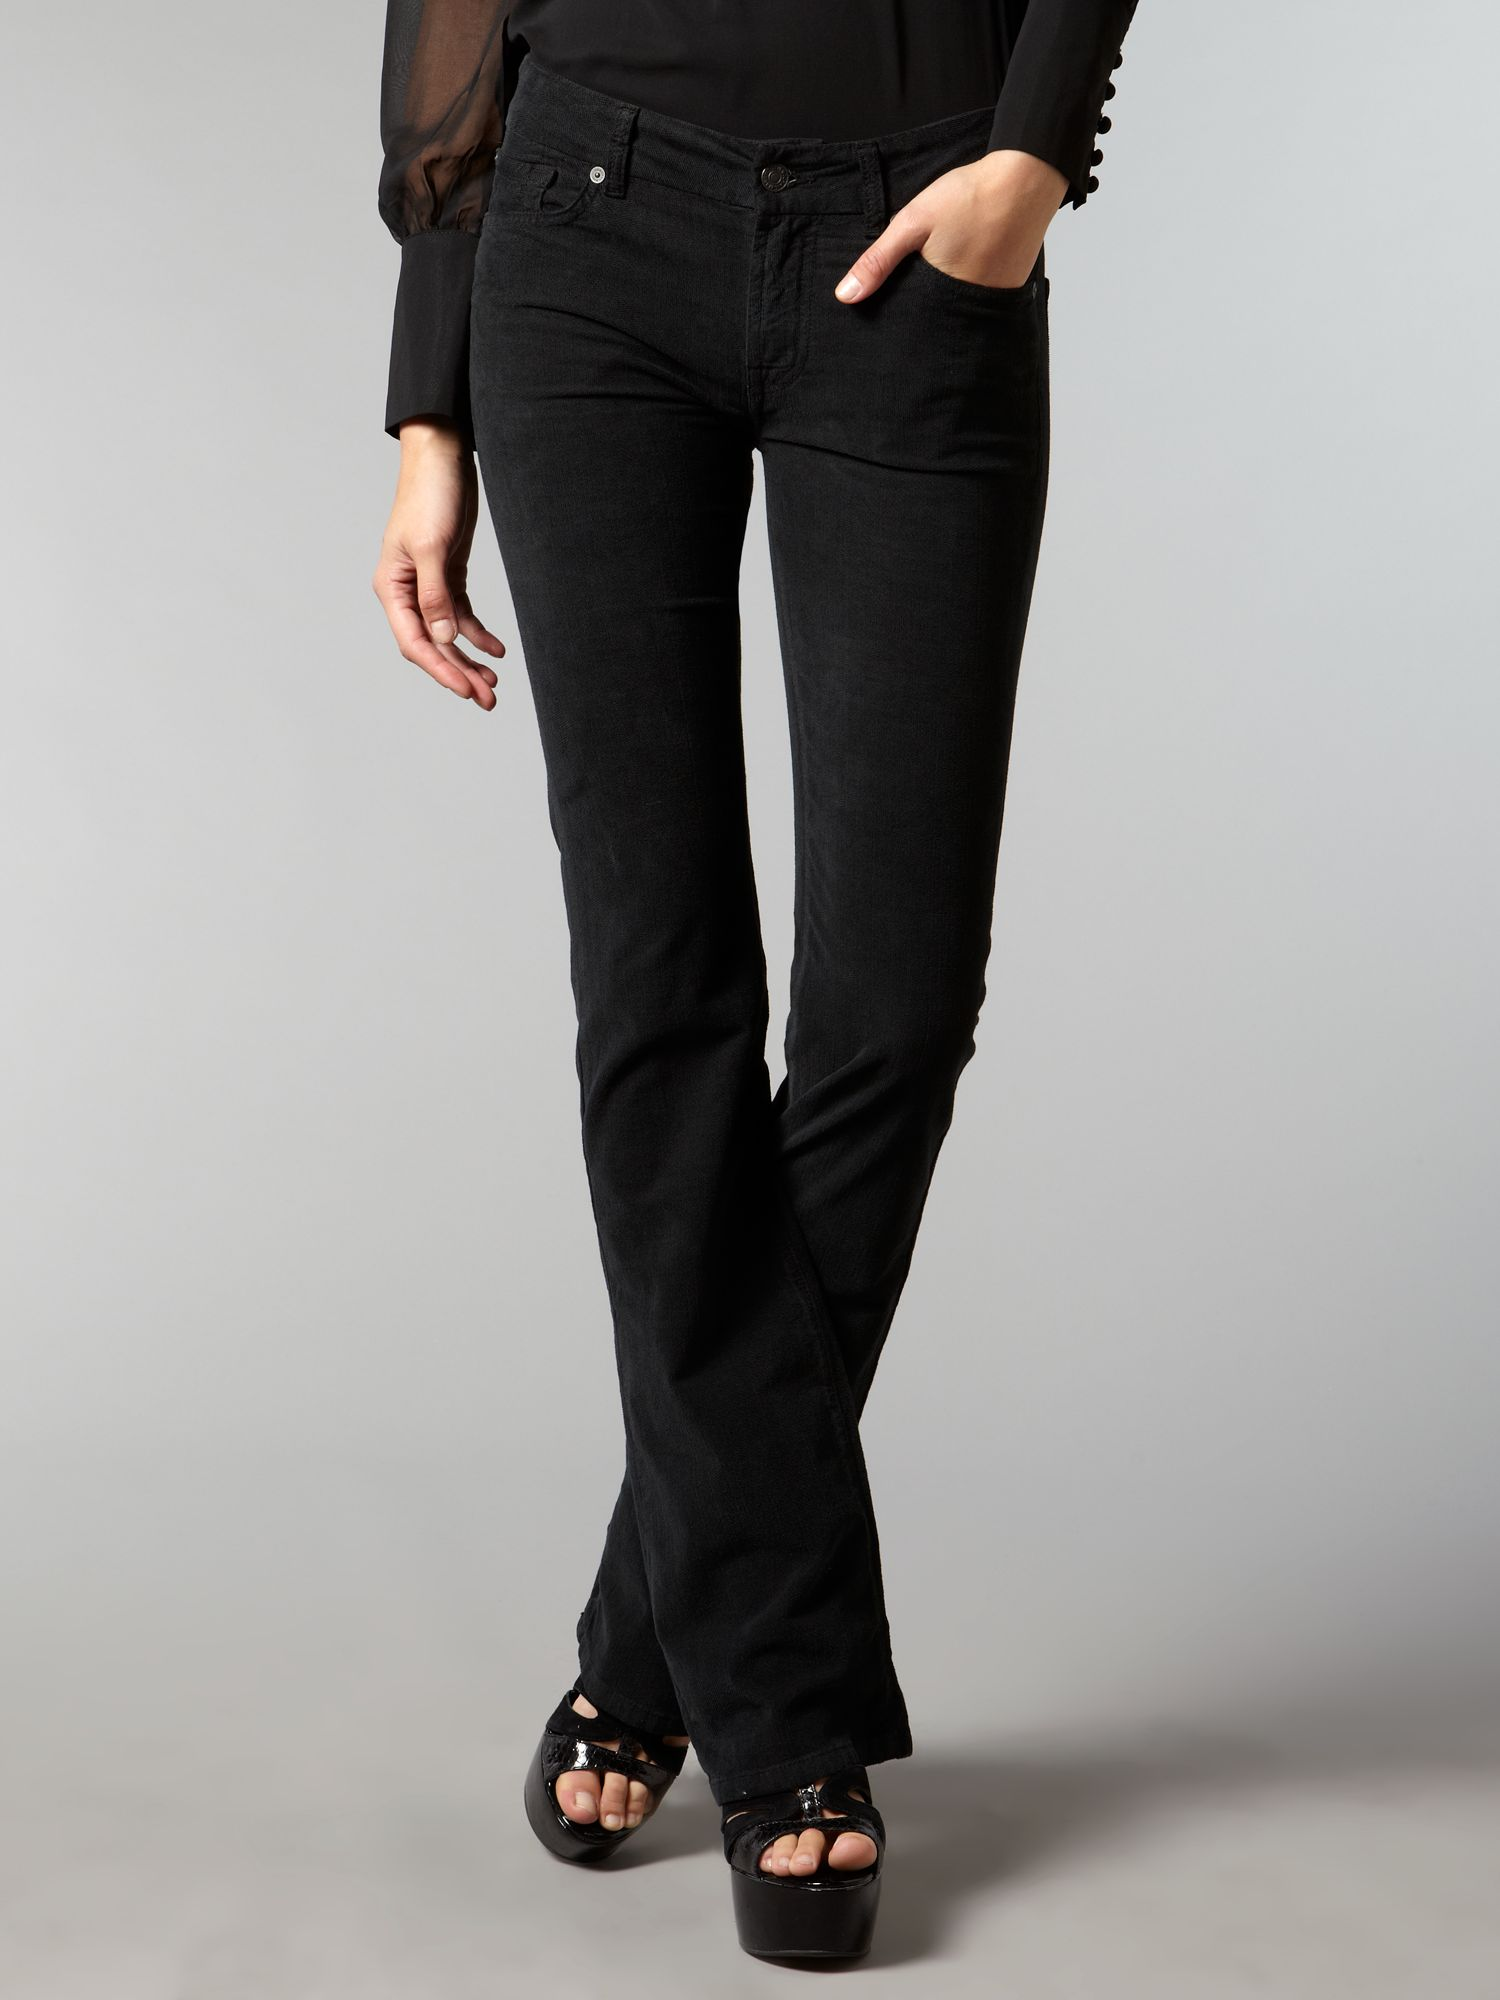 7 for all mankind kimmie boot cut black cord in black lyst. Black Bedroom Furniture Sets. Home Design Ideas